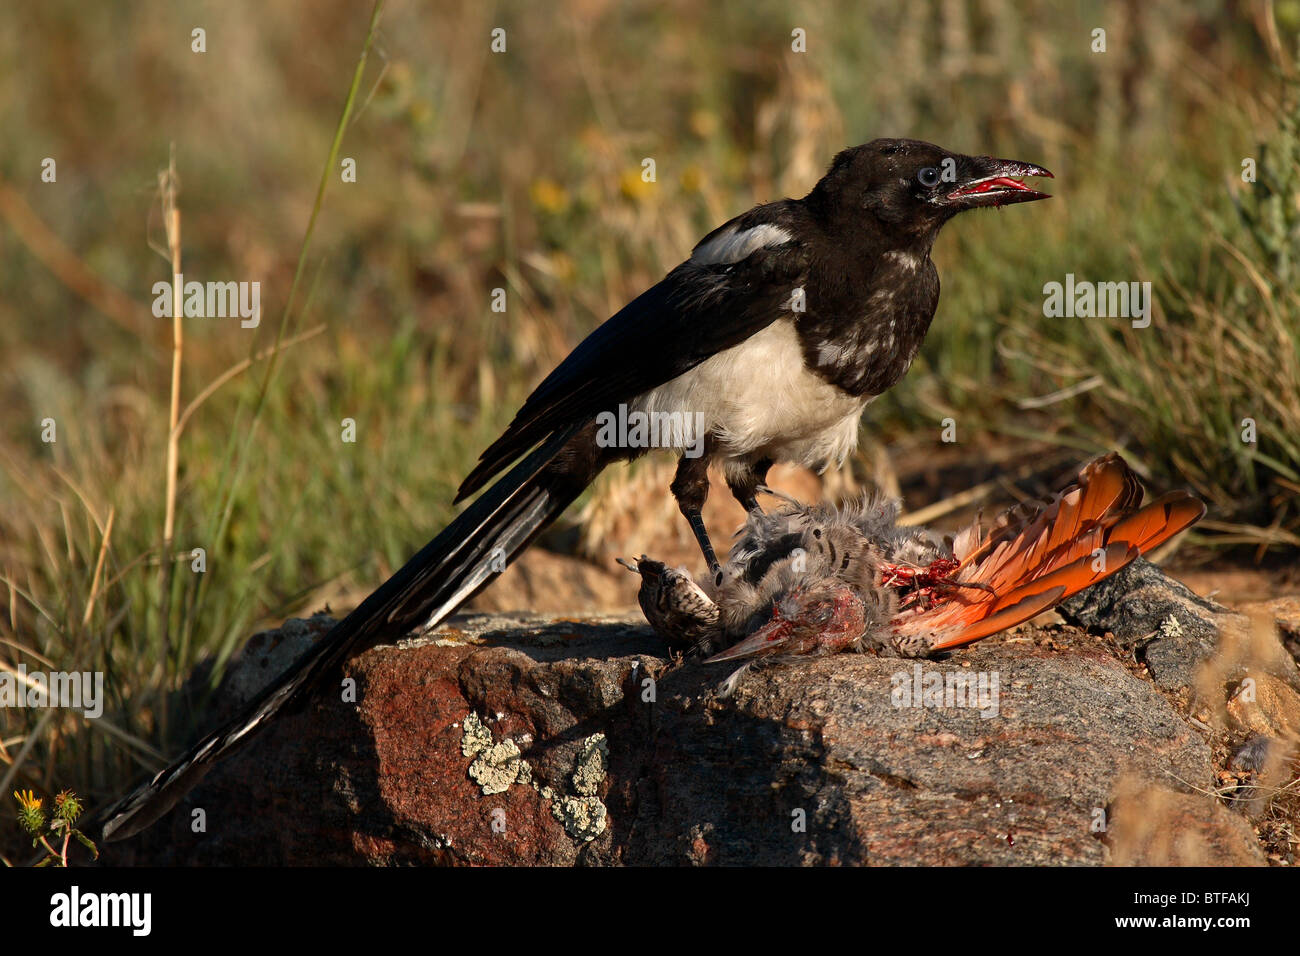 A Black-billed Magpie eating a Northern Flicker in Colorado. - Stock Image